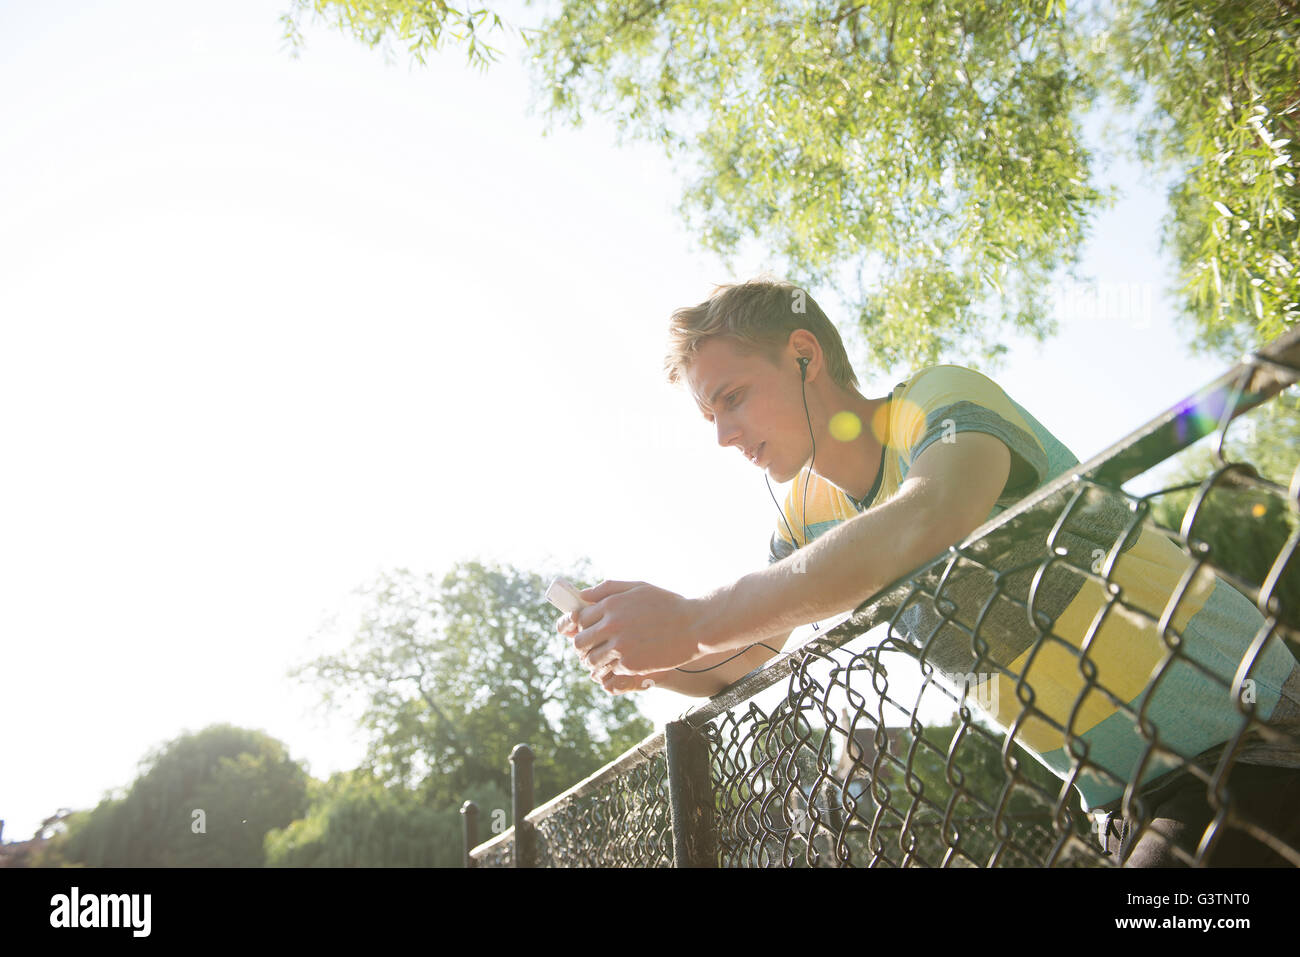 A young man leans on a railing listening to music through headphones. - Stock Image